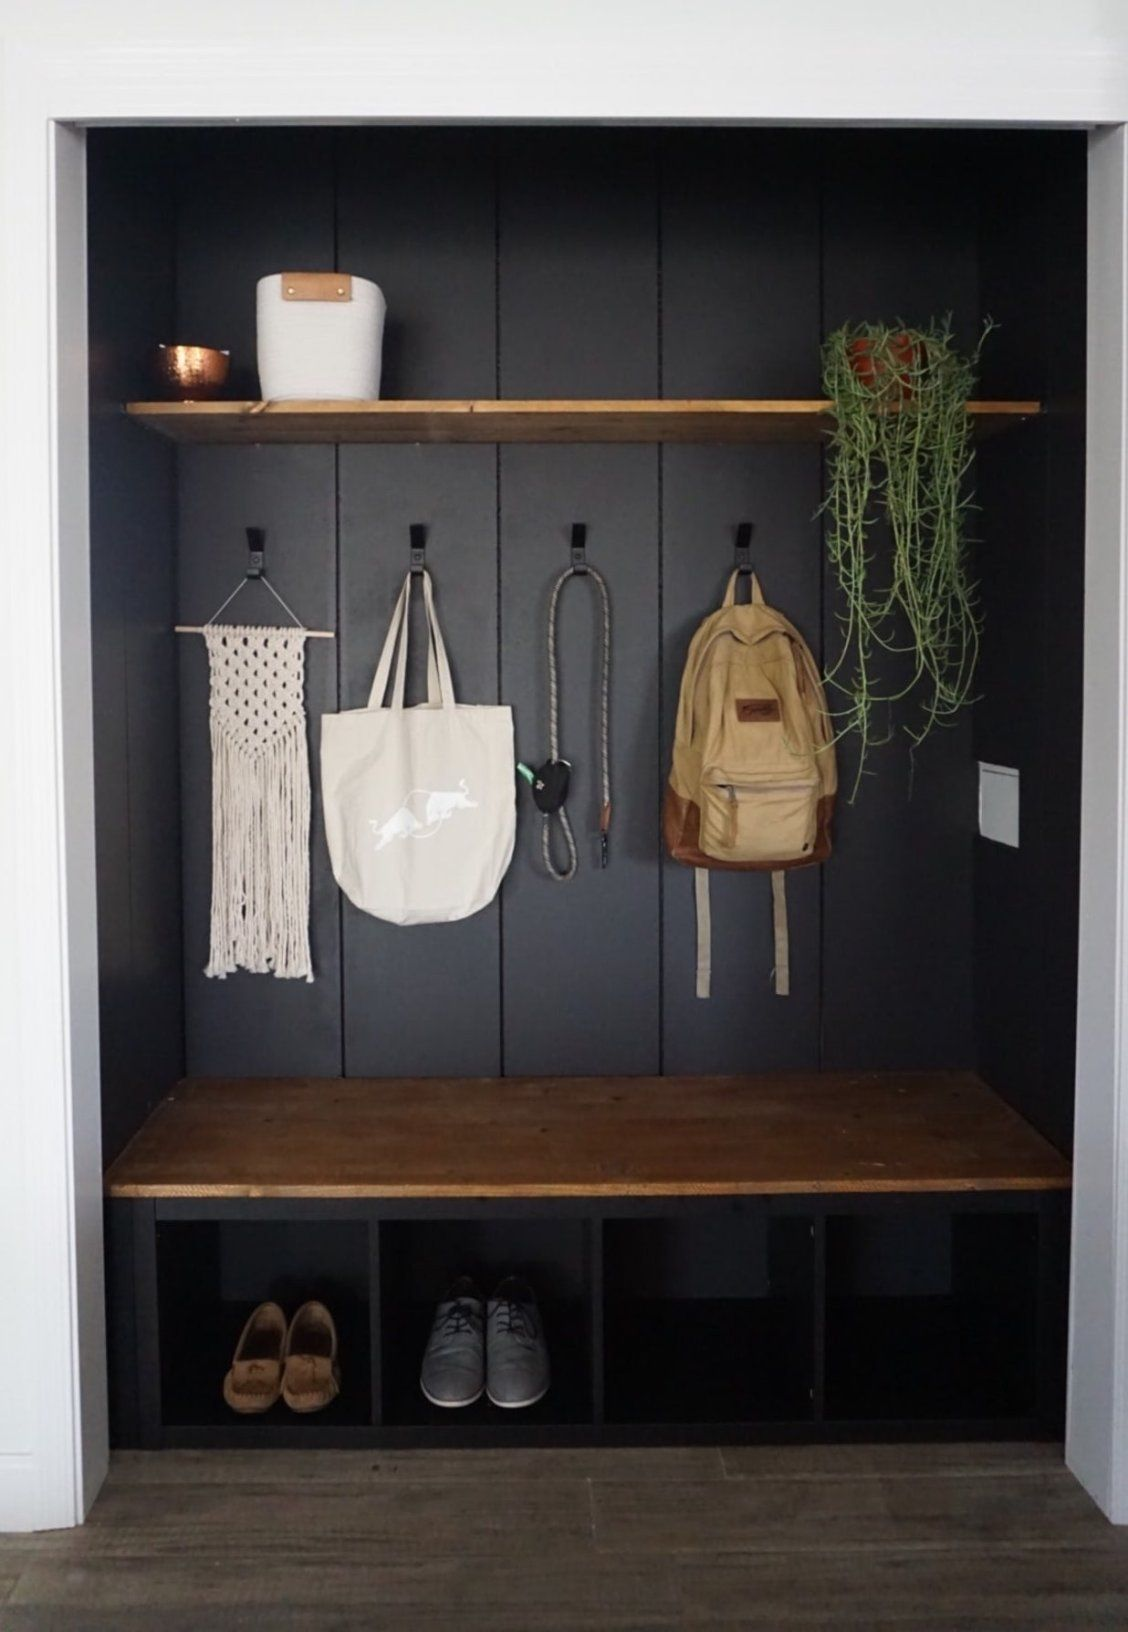 Before And After: $215 and clever DIYs made this entryway much more practical. #entrywaymakeover #entryway #entrywayideas #mudroom #mudroomideas #entrywaydecor #mudroomdecor #mudroomstorage #entrywaystorage #closetideas #closetstorage